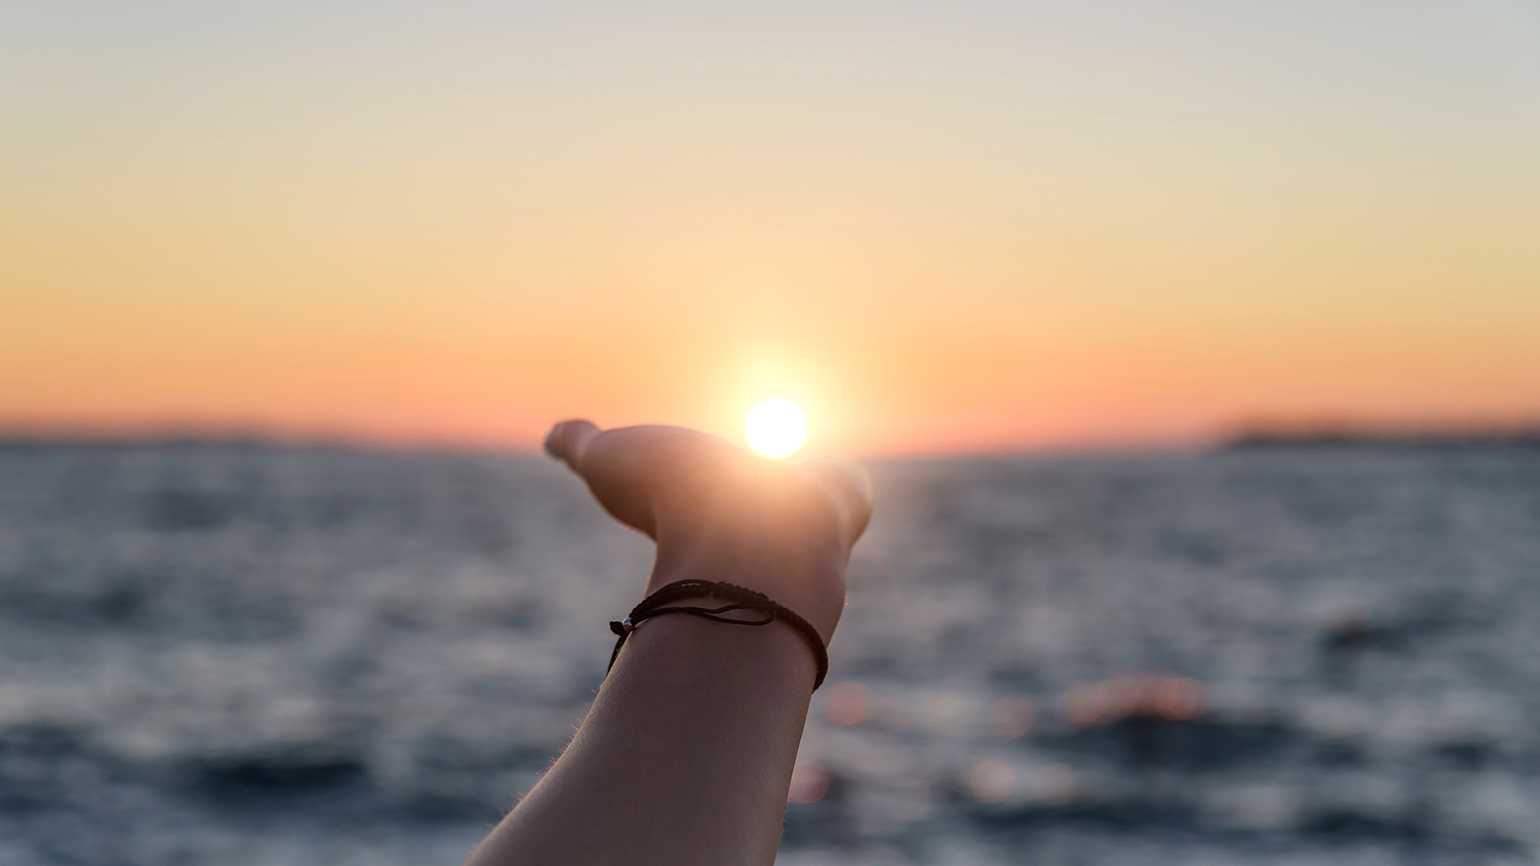 A woman's hand reaches out toward the sun rising over the ocean